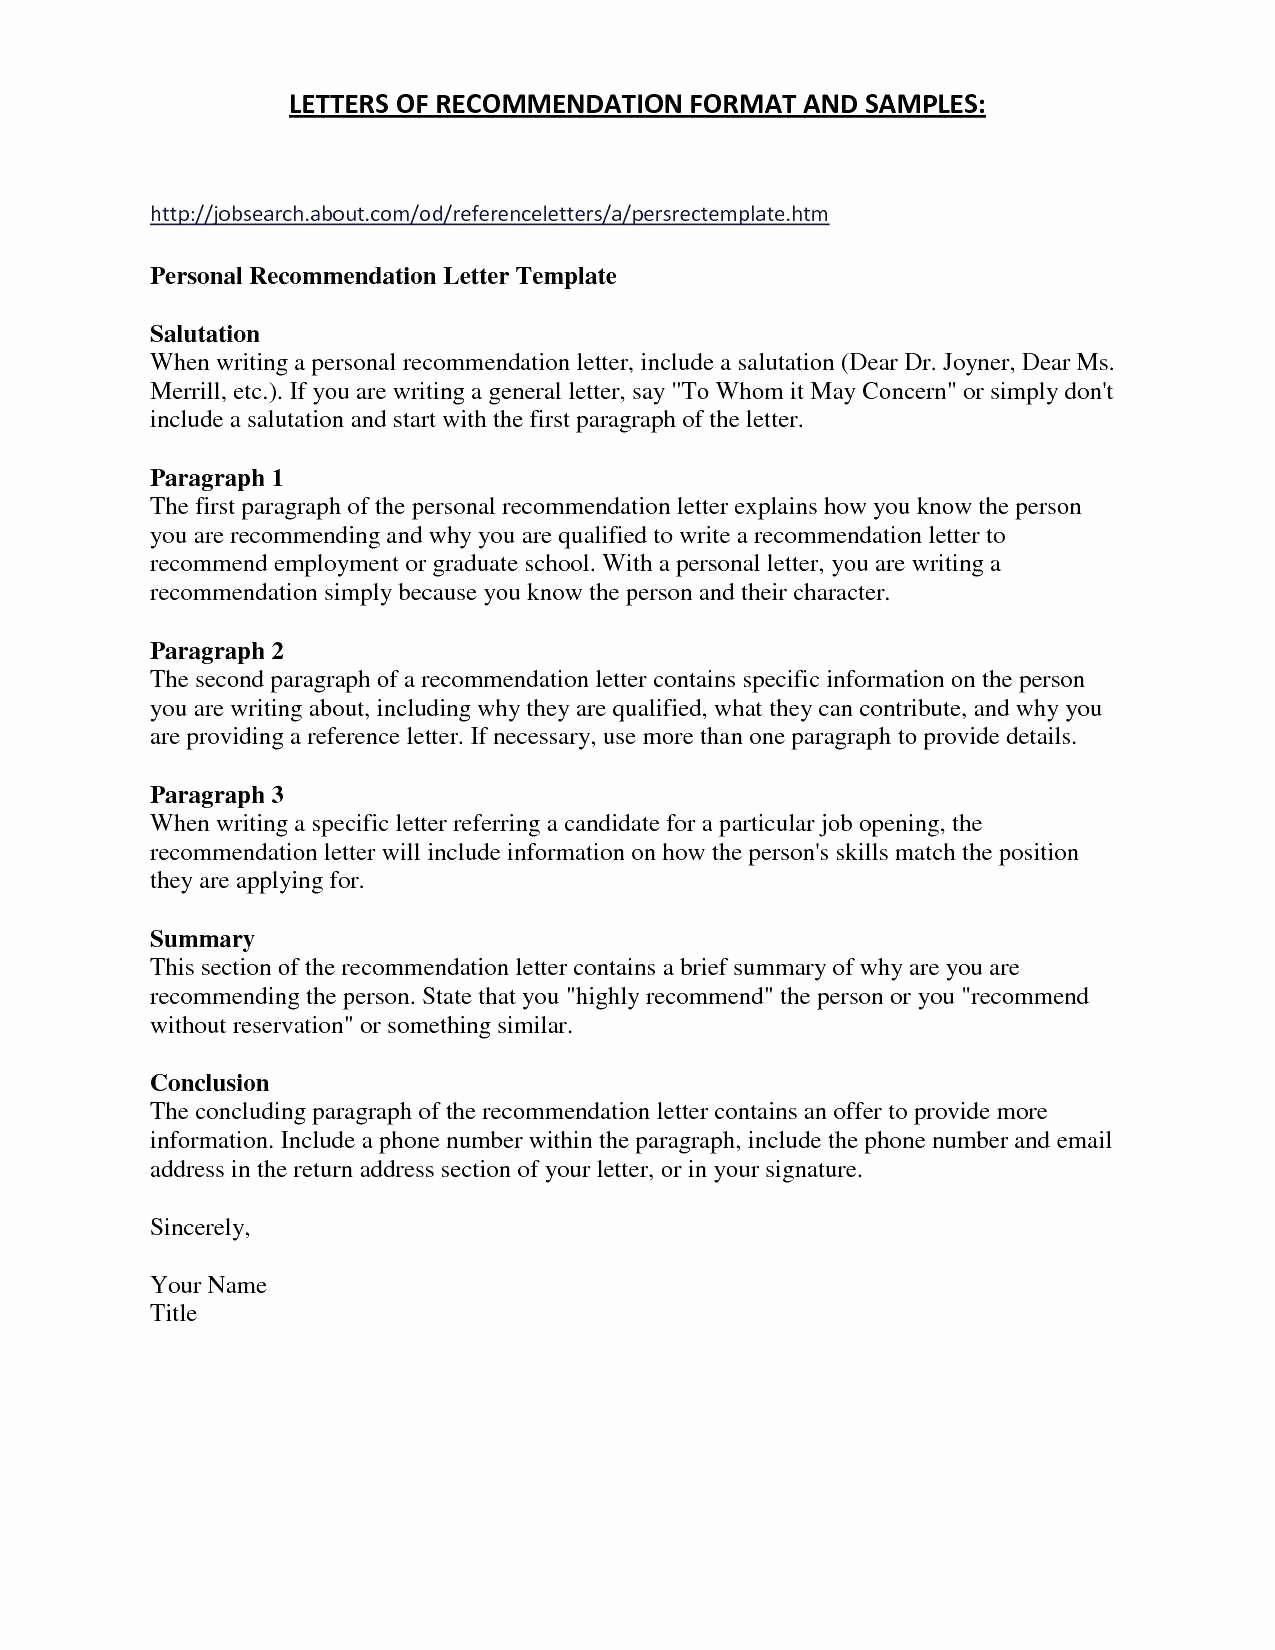 General Letter Of Recommendation Template - Temporary Custody Letter Template Luxury Power attorney Examples